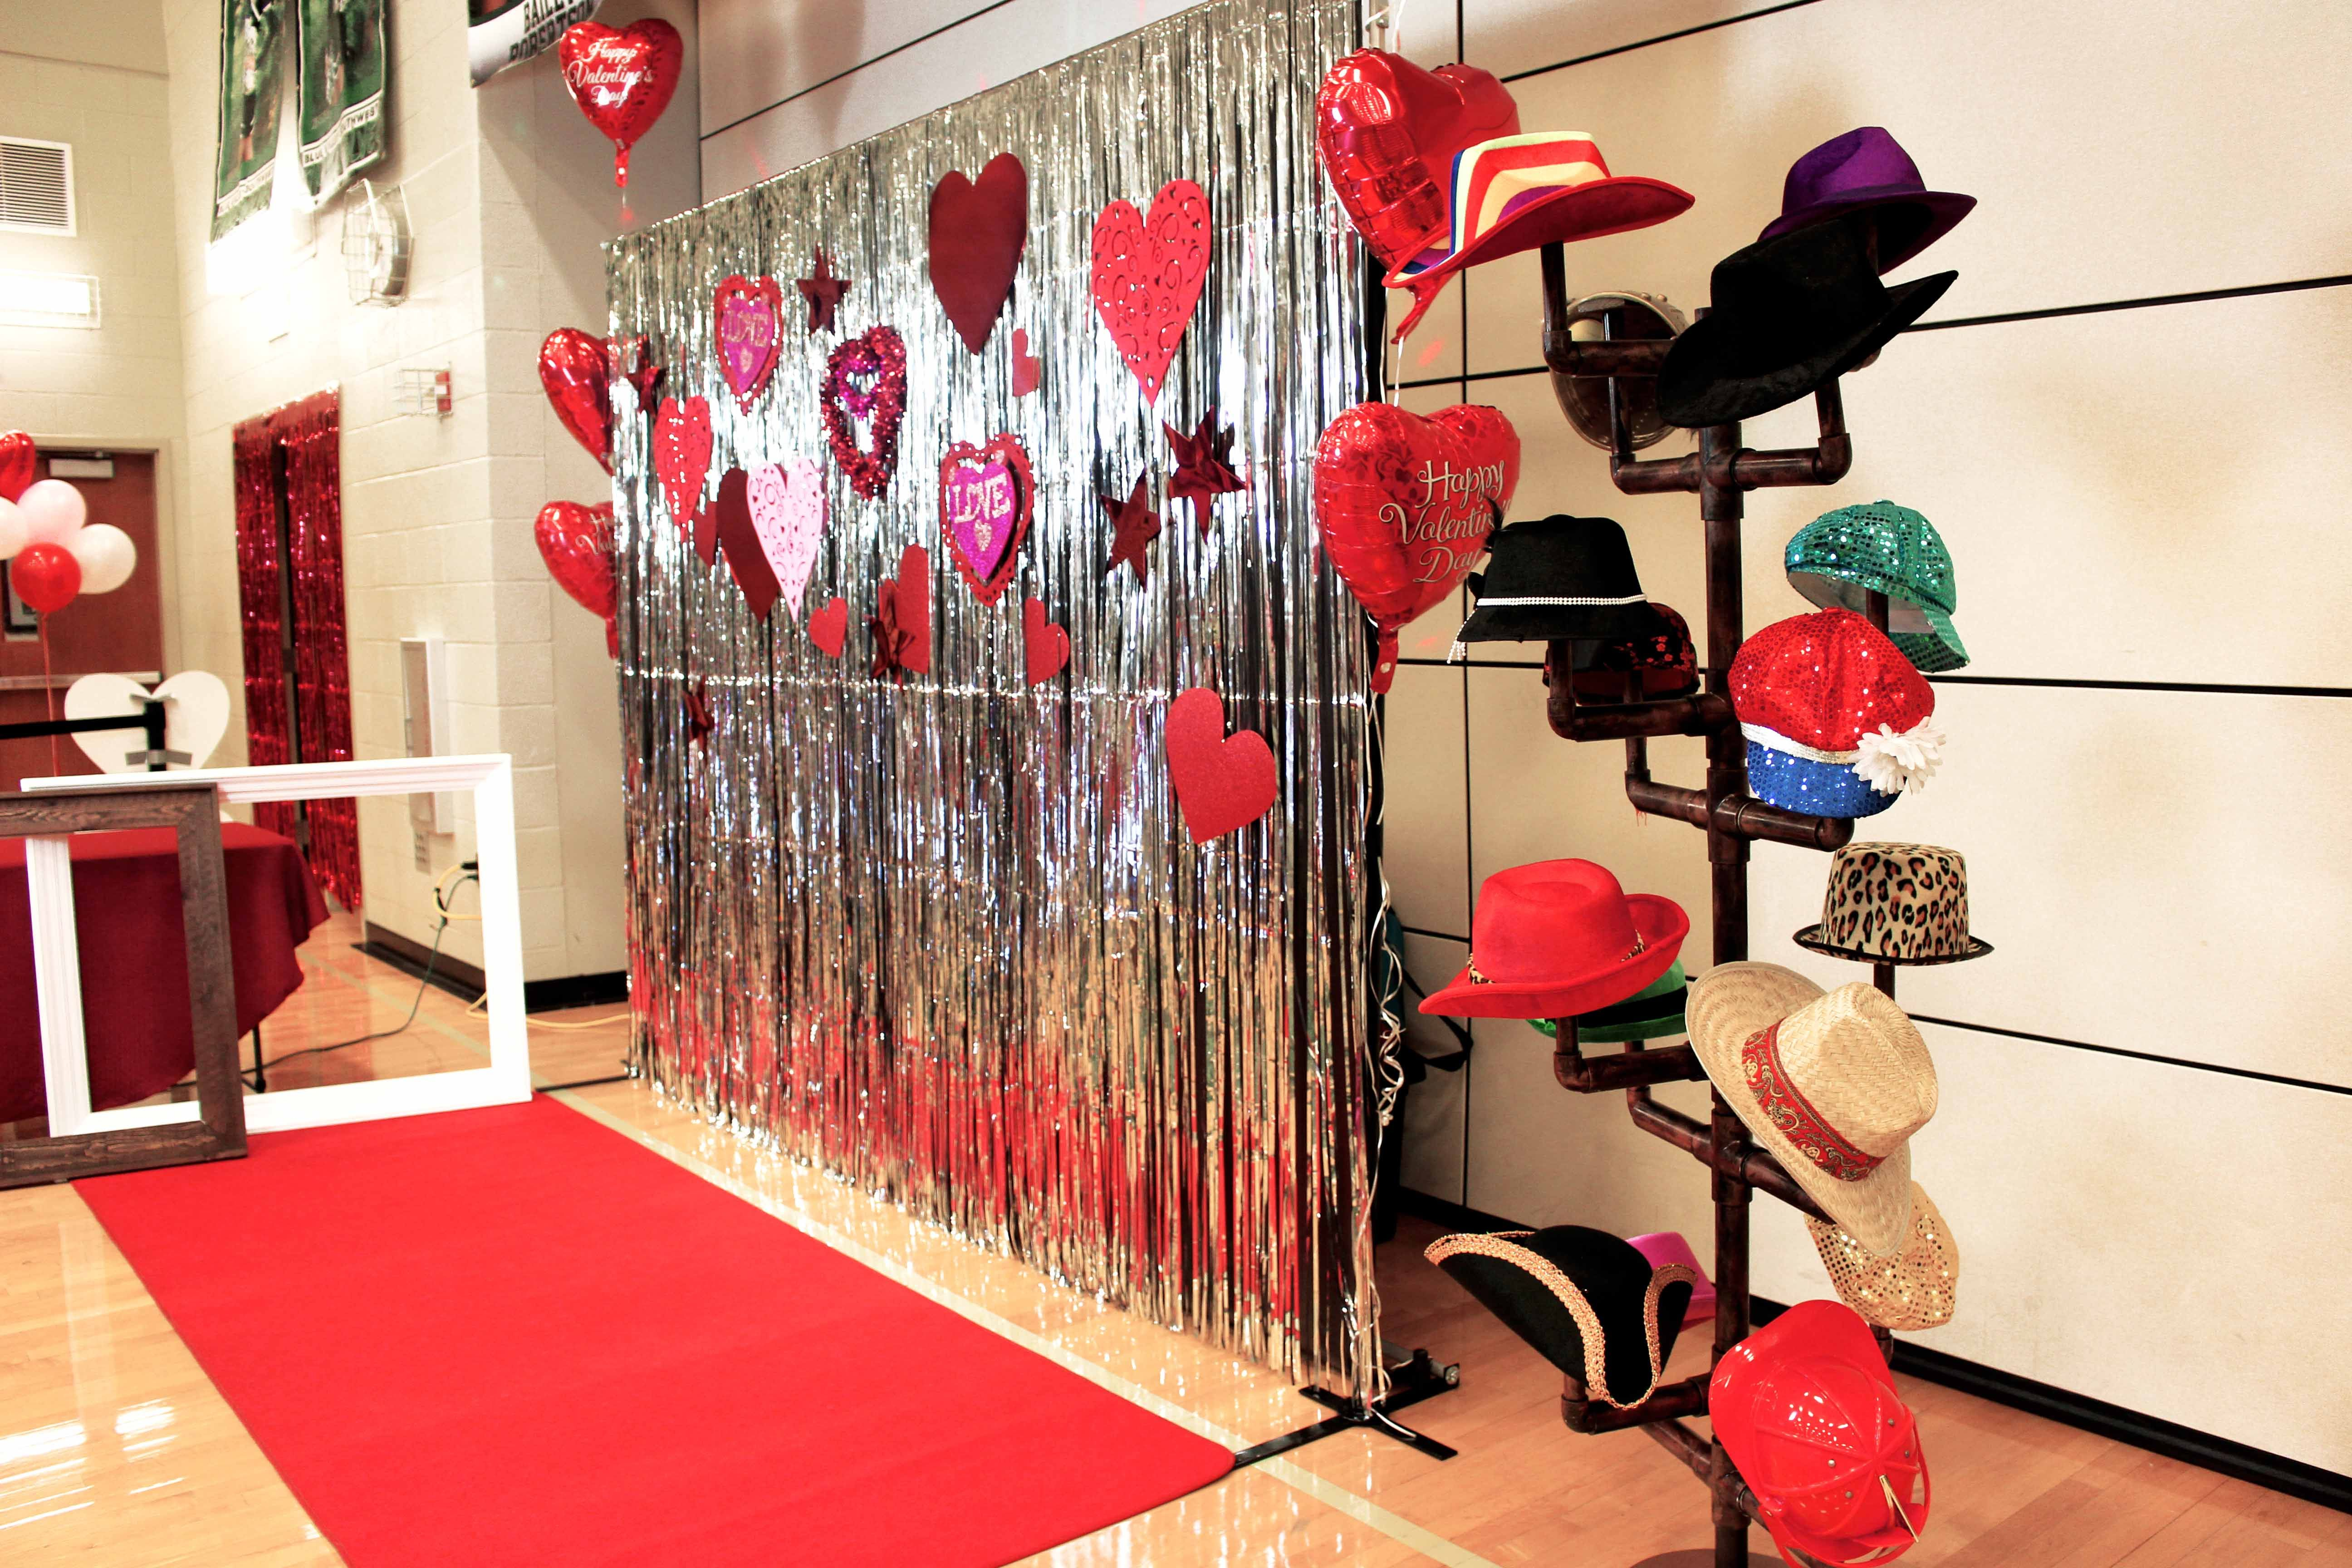 Our Valentine's Day red carpet photo booth shoot for Blue